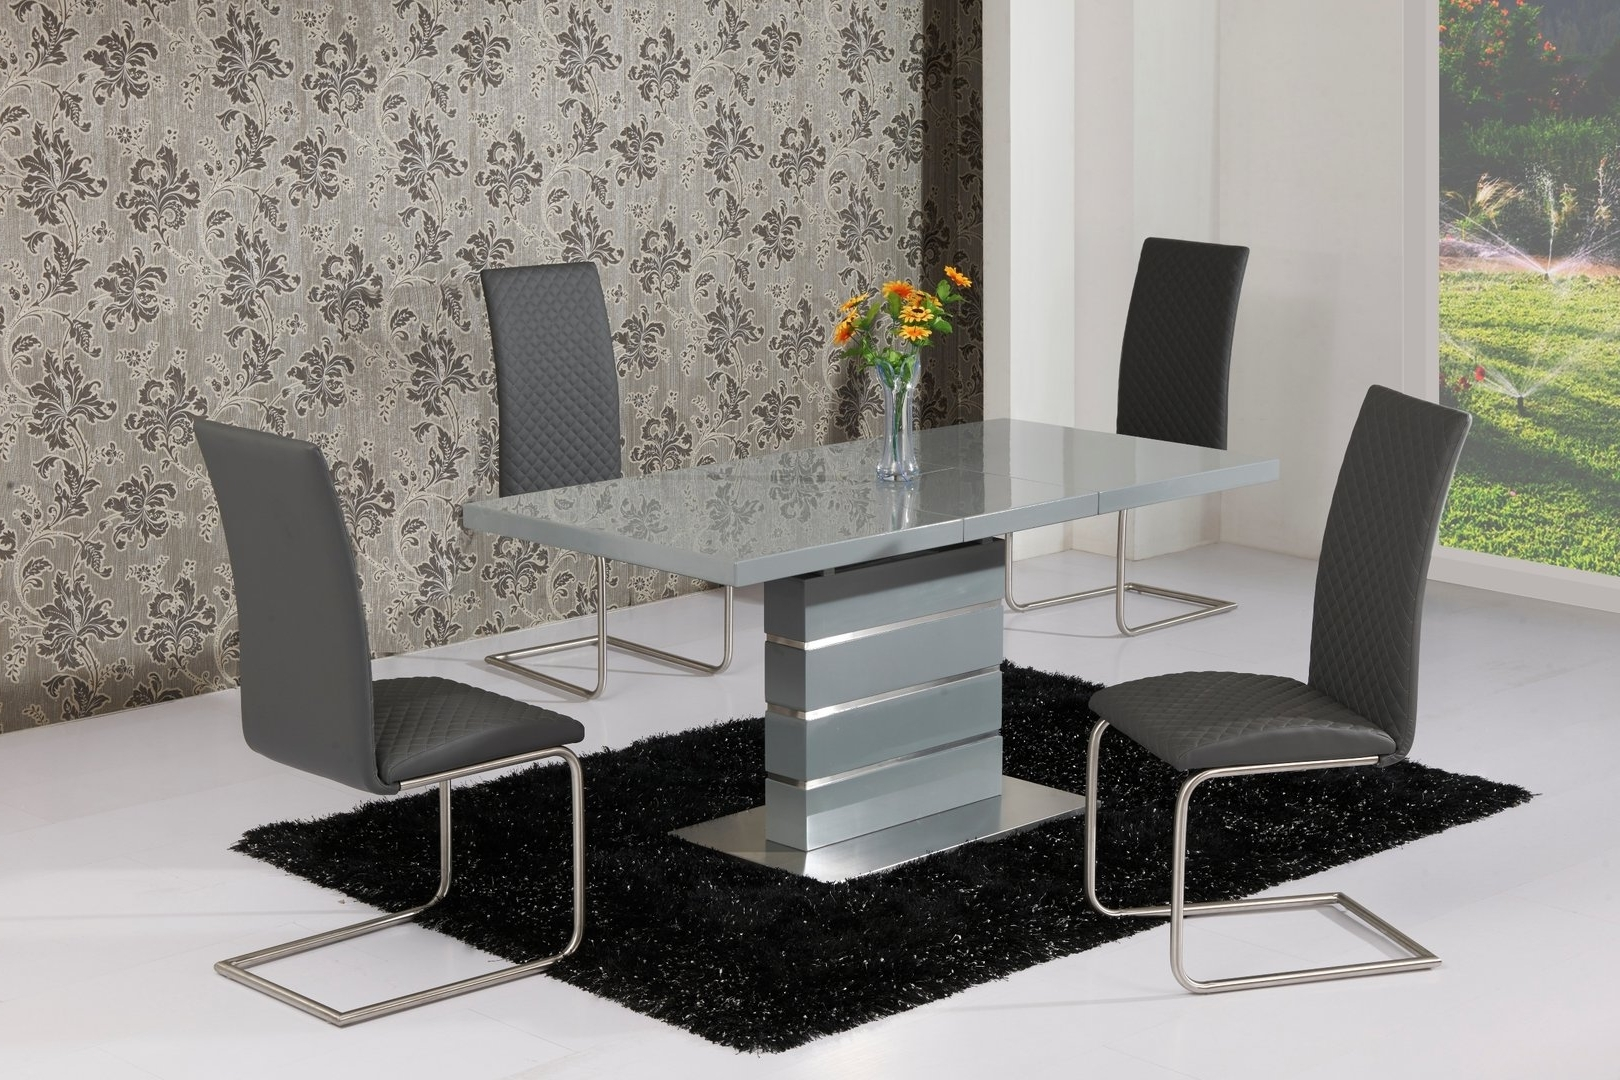 Extending Grey High Gloss Dining Table And 4 Grey Chairs pertaining to Well-liked Grey Gloss Dining Tables